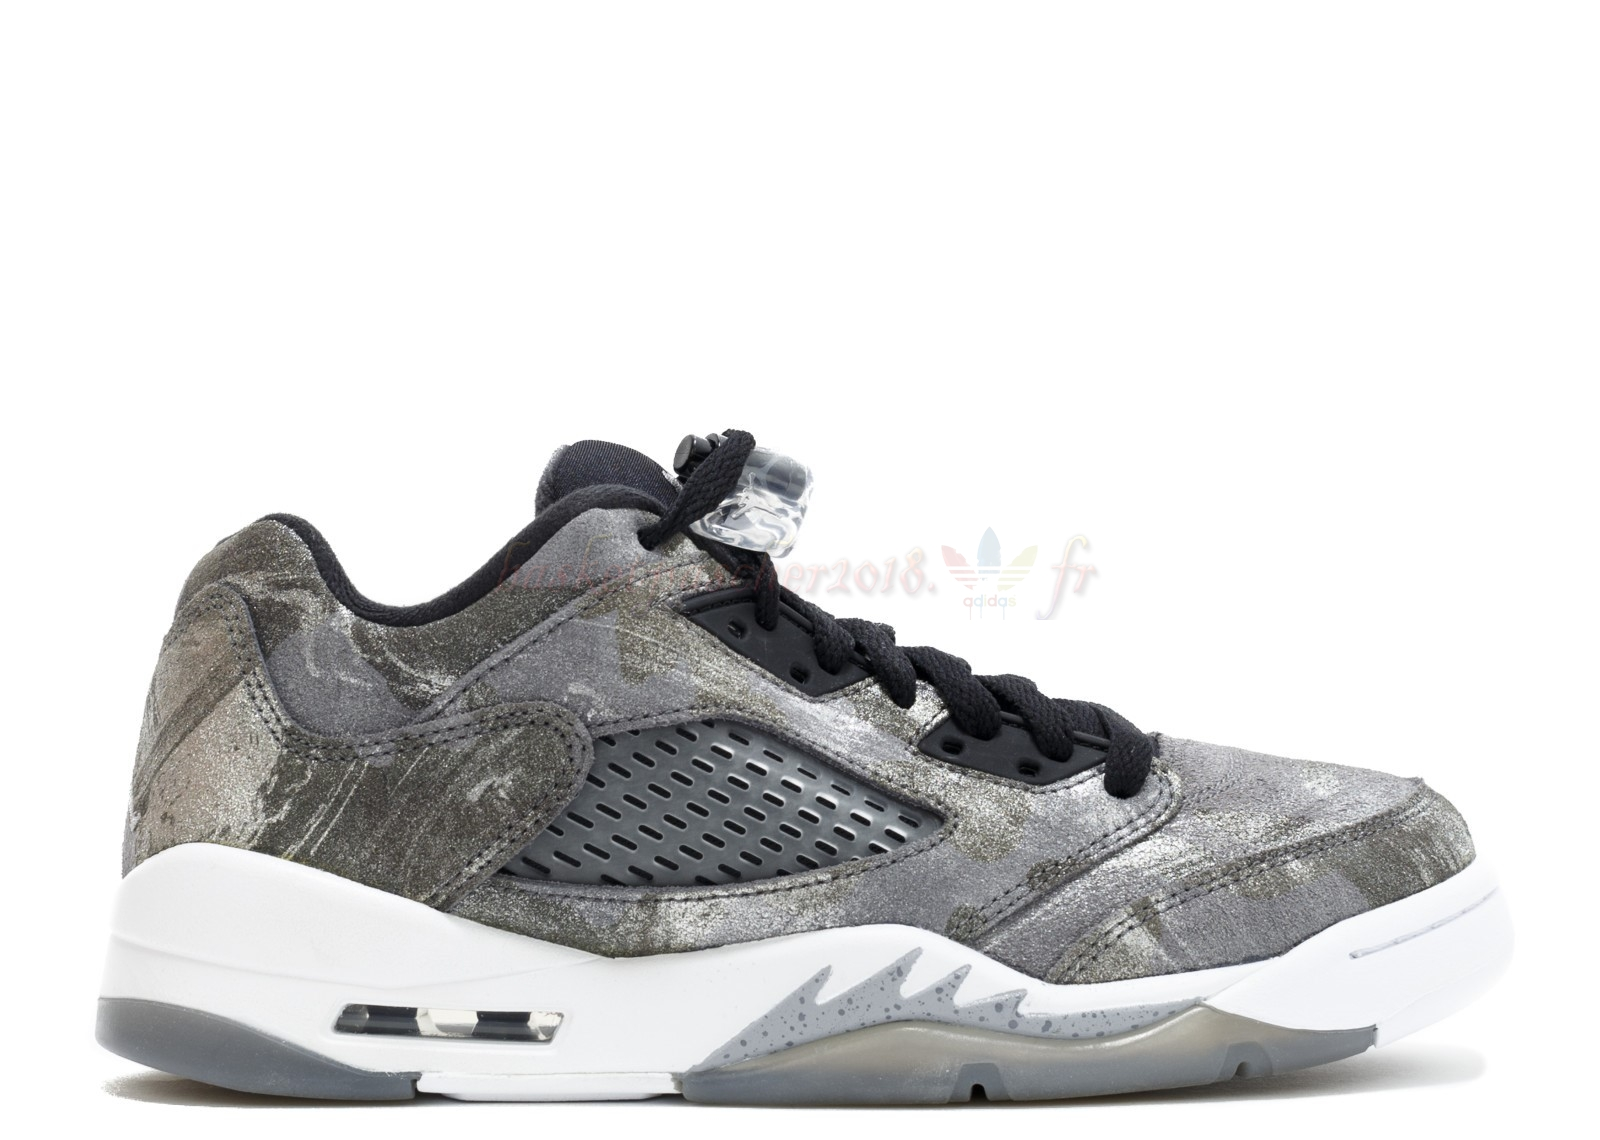 Vente Chaude Chaussures De Basketball Femme Air Jordan 5 Prem Low (Gs)